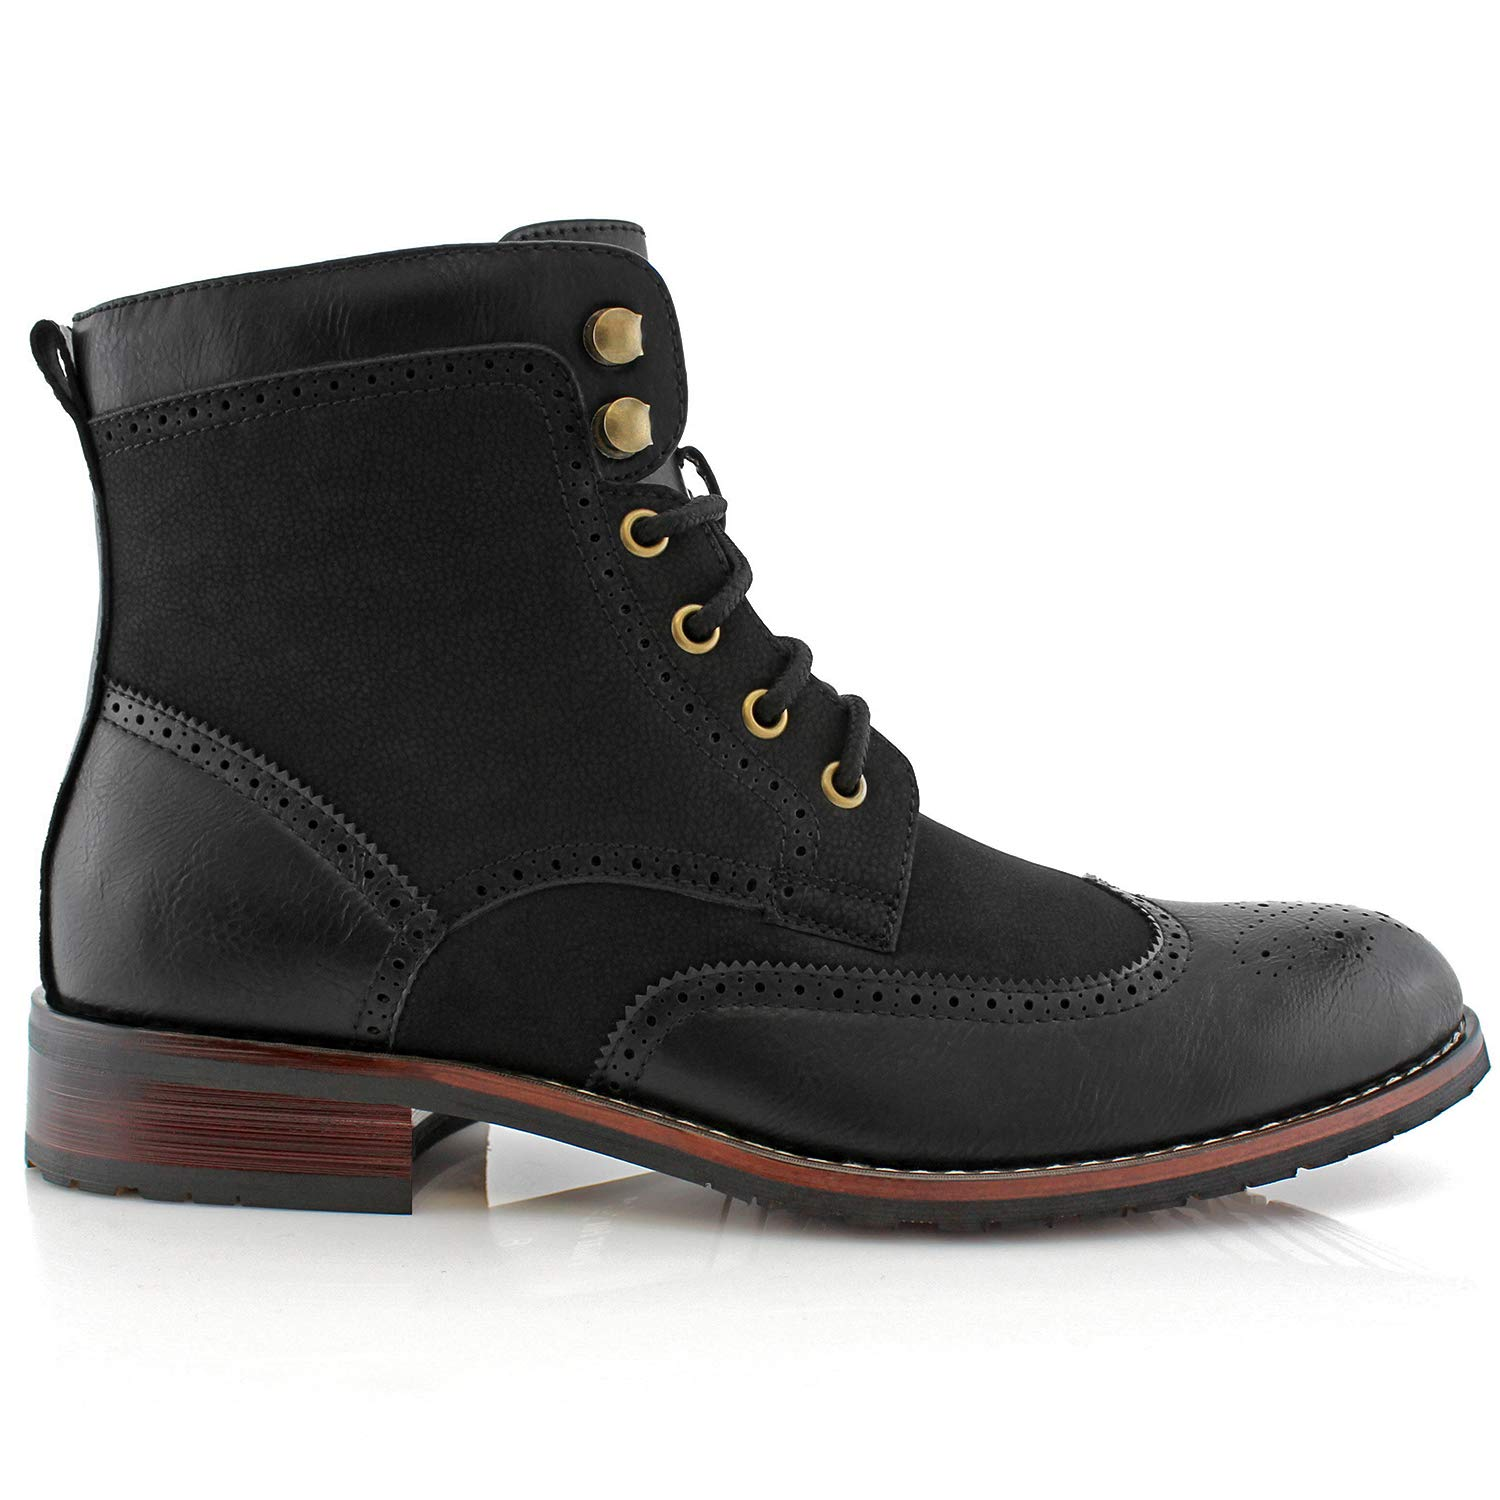 a14429adff1 Polar Fox Jonah MPX808567 Mens Casual Perforated Vegan Leather High-Top Red  Wing tip Brogue Western Derby Dress Boots